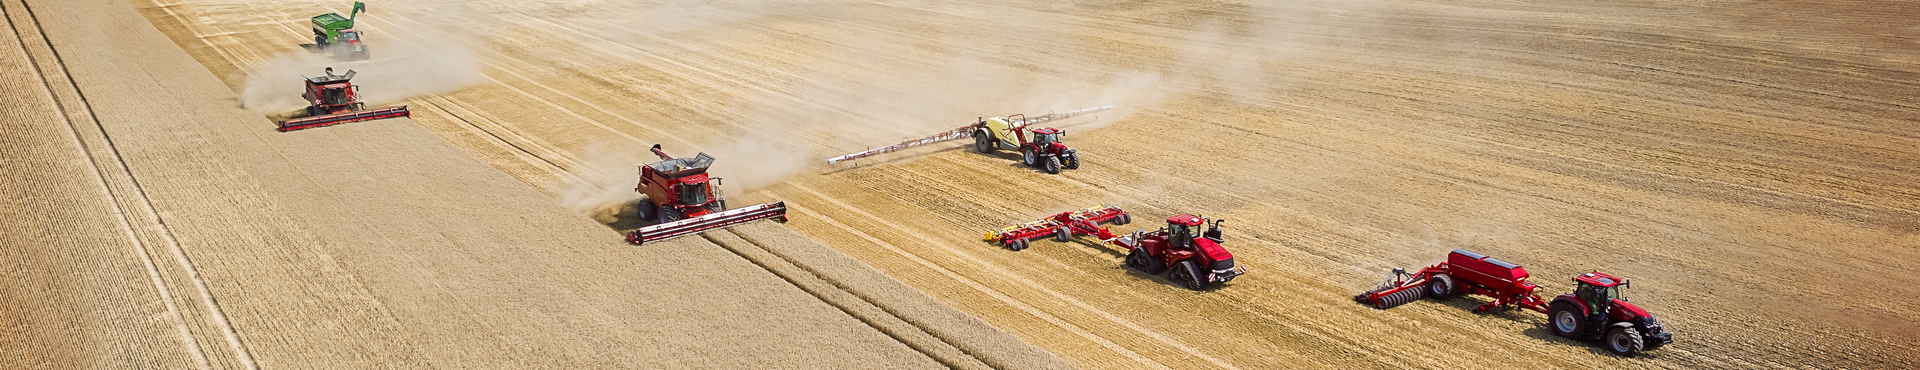 case-ih-axial-flow-250